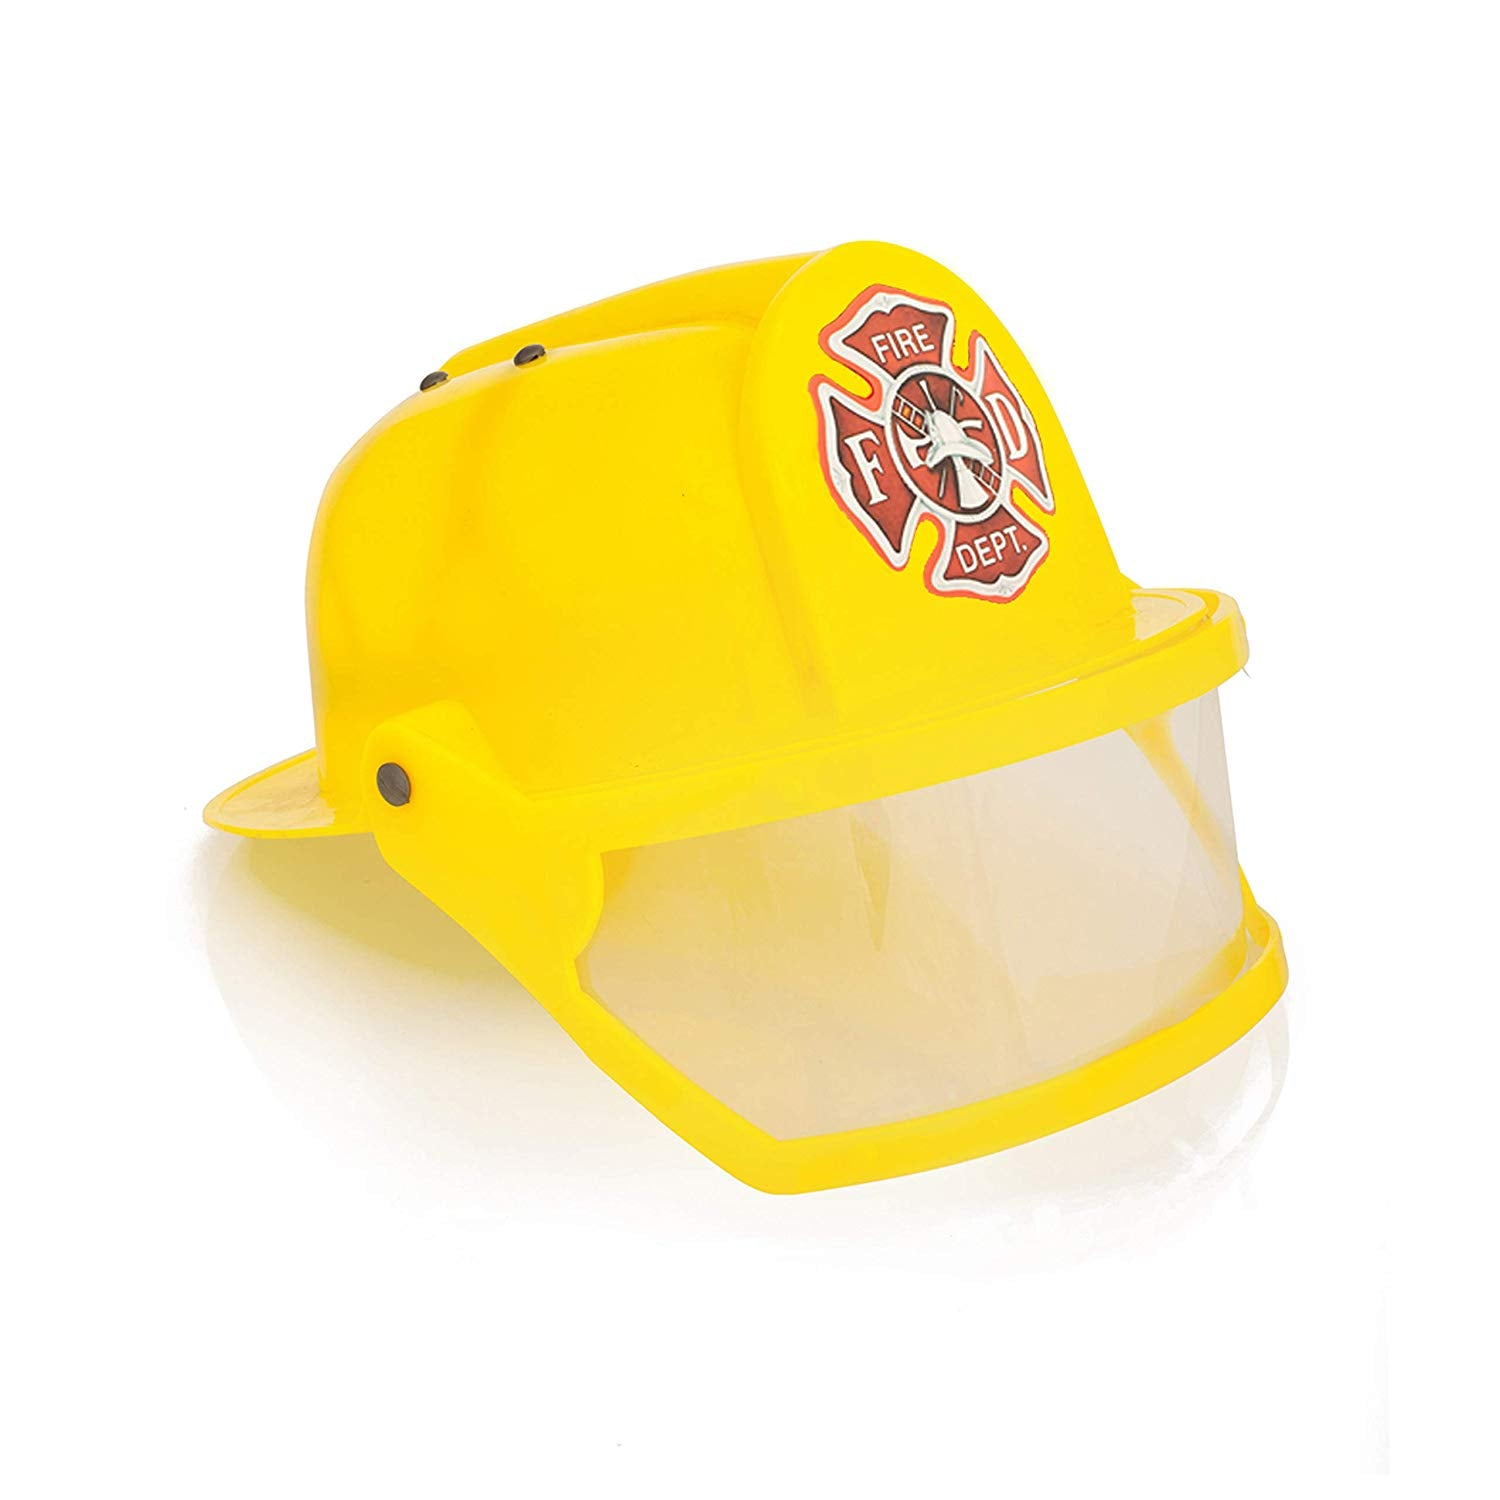 Costume, Dress Up Hard Hats, Children Role Play, Ages 3+